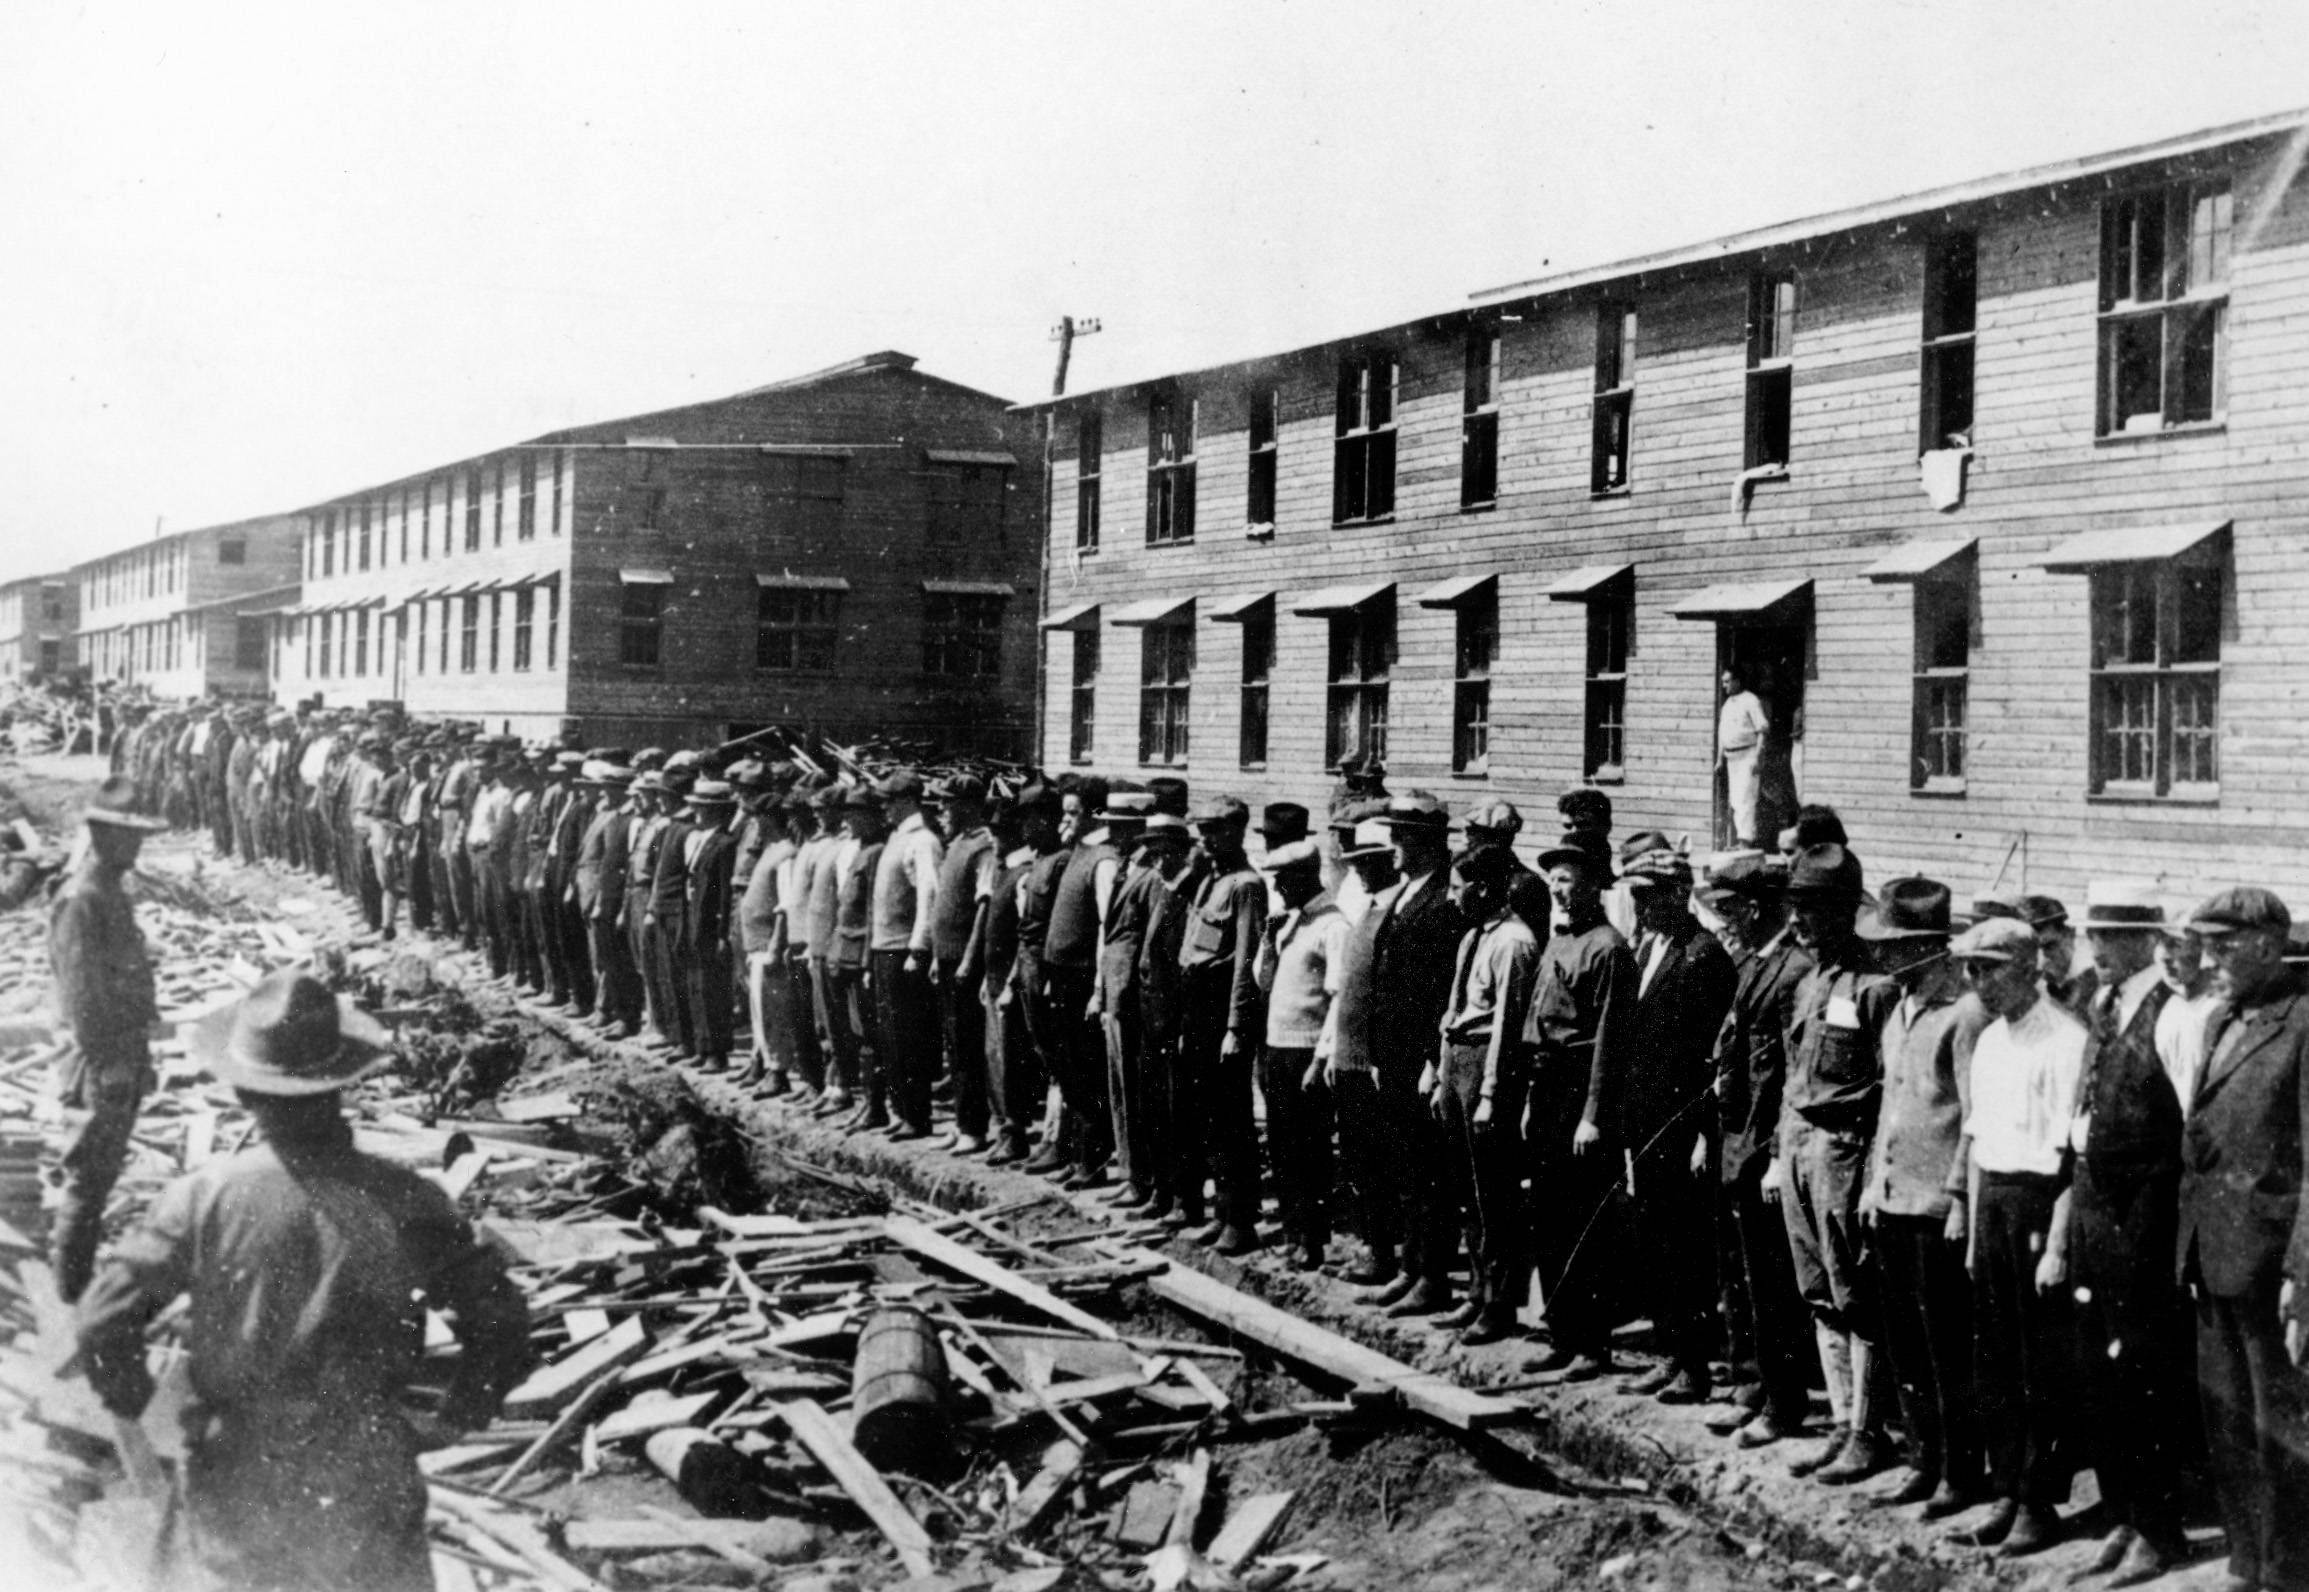 77 OF 100: In this 1917 file photo, members of the first contingent of New Yorkers drafted into the U.S. Army line up in front of their barracks at Camp Upton, Yaphank, Long Island, N.Y.